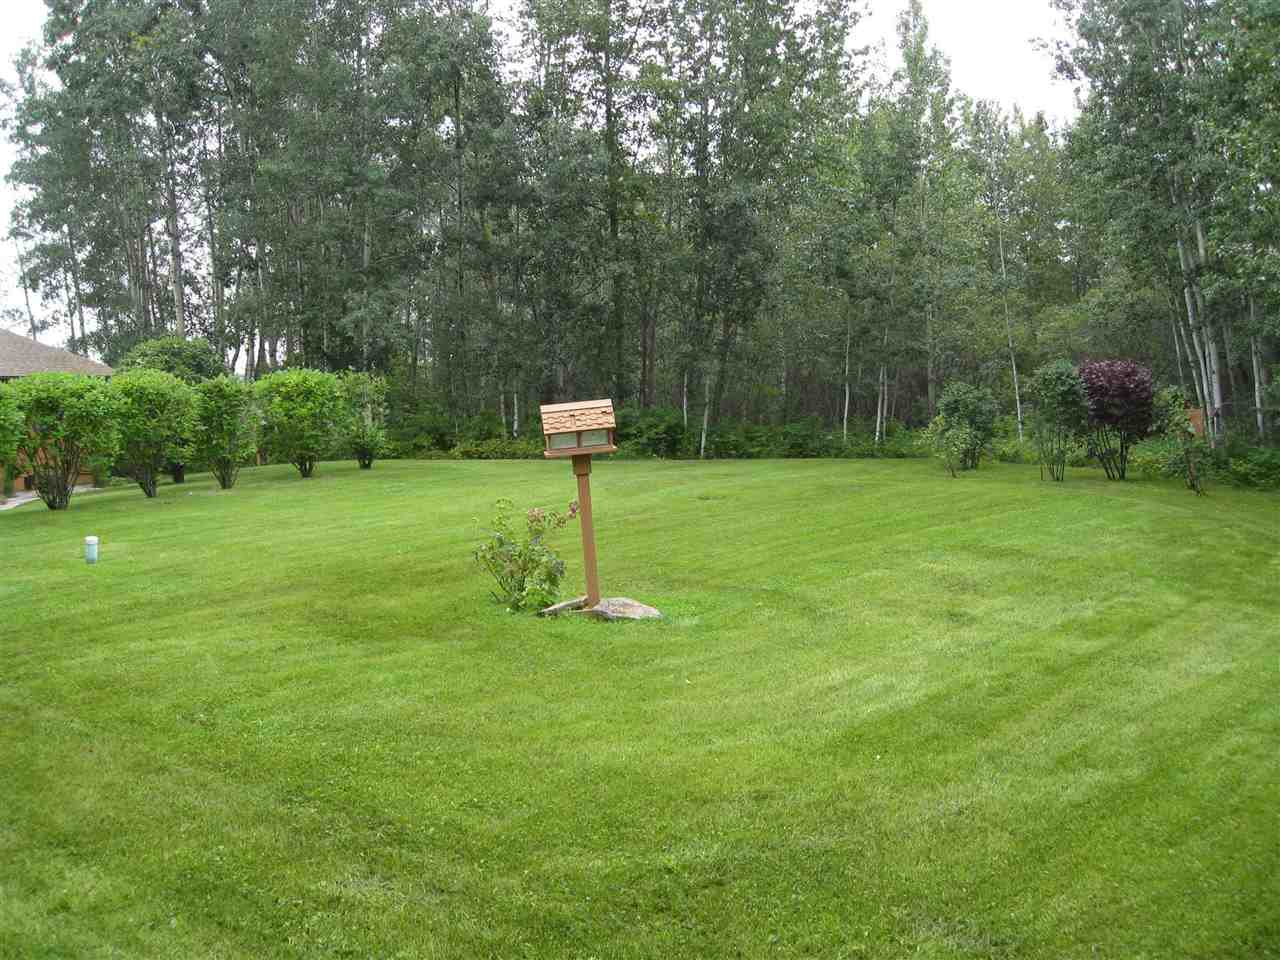 Photo 23: Photos: 5, 1319 Twp Rd 550: Rural Lac Ste. Anne County House for sale : MLS®# E4167720